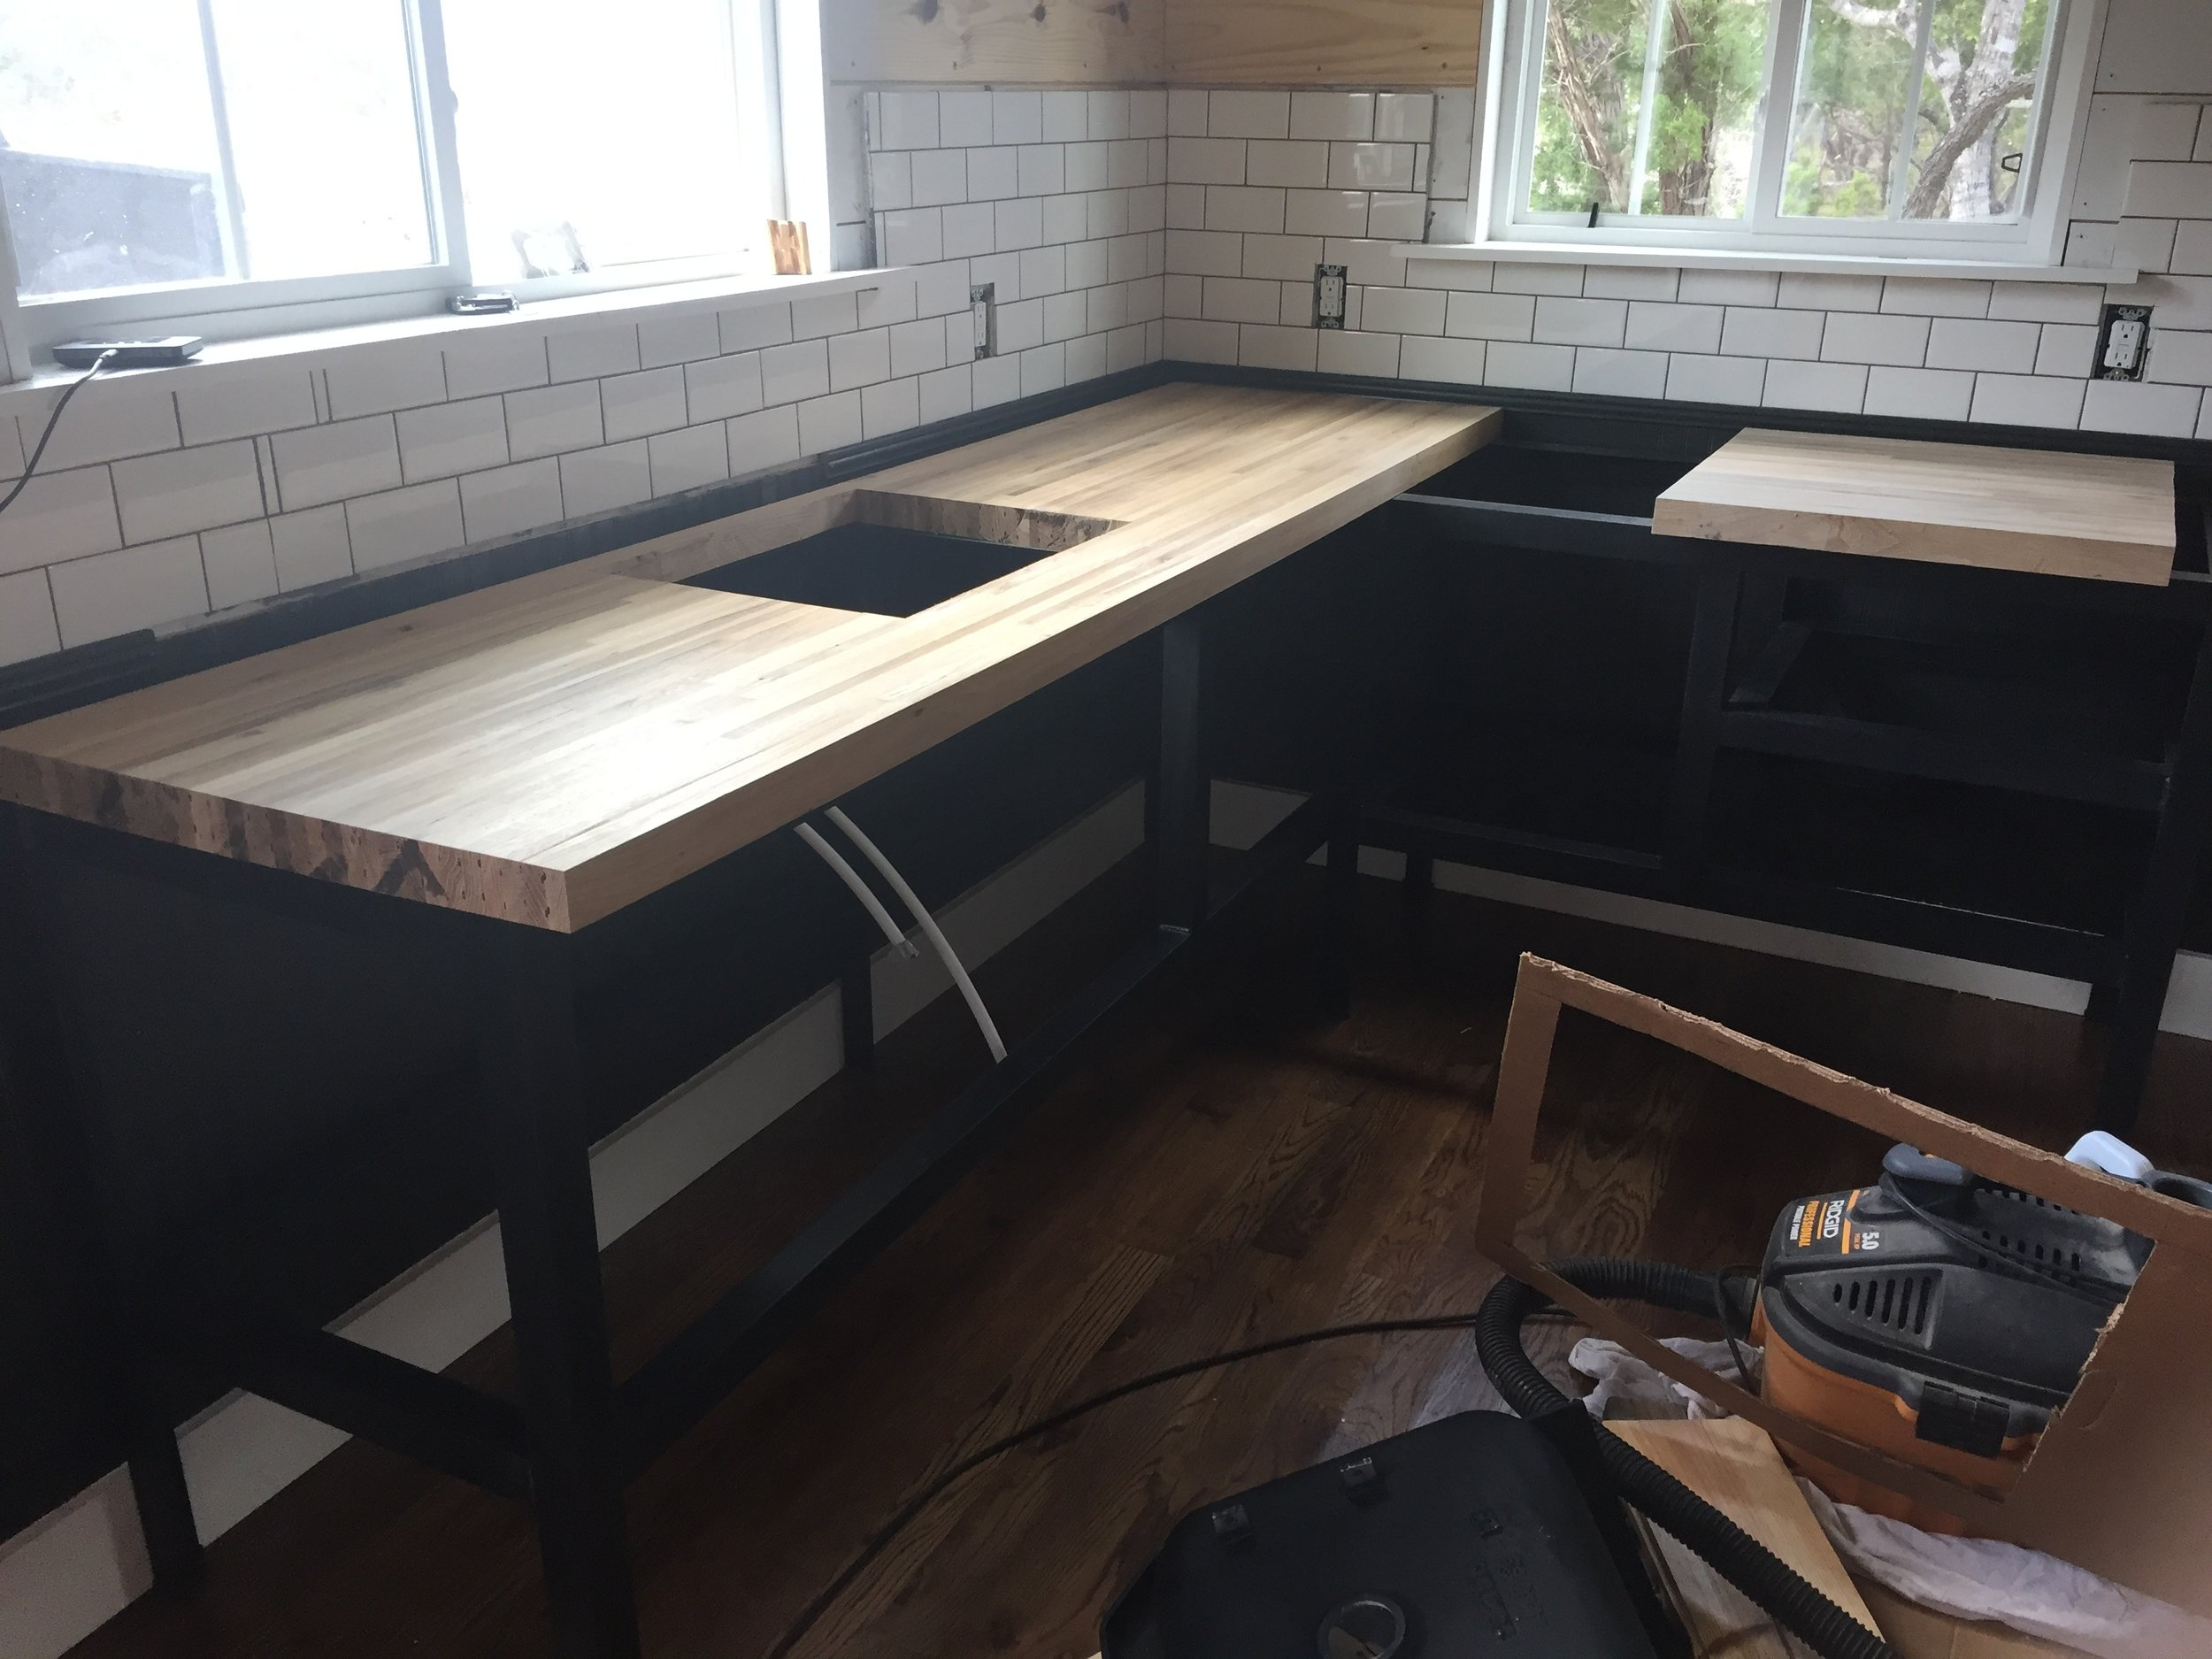 countertops being installed